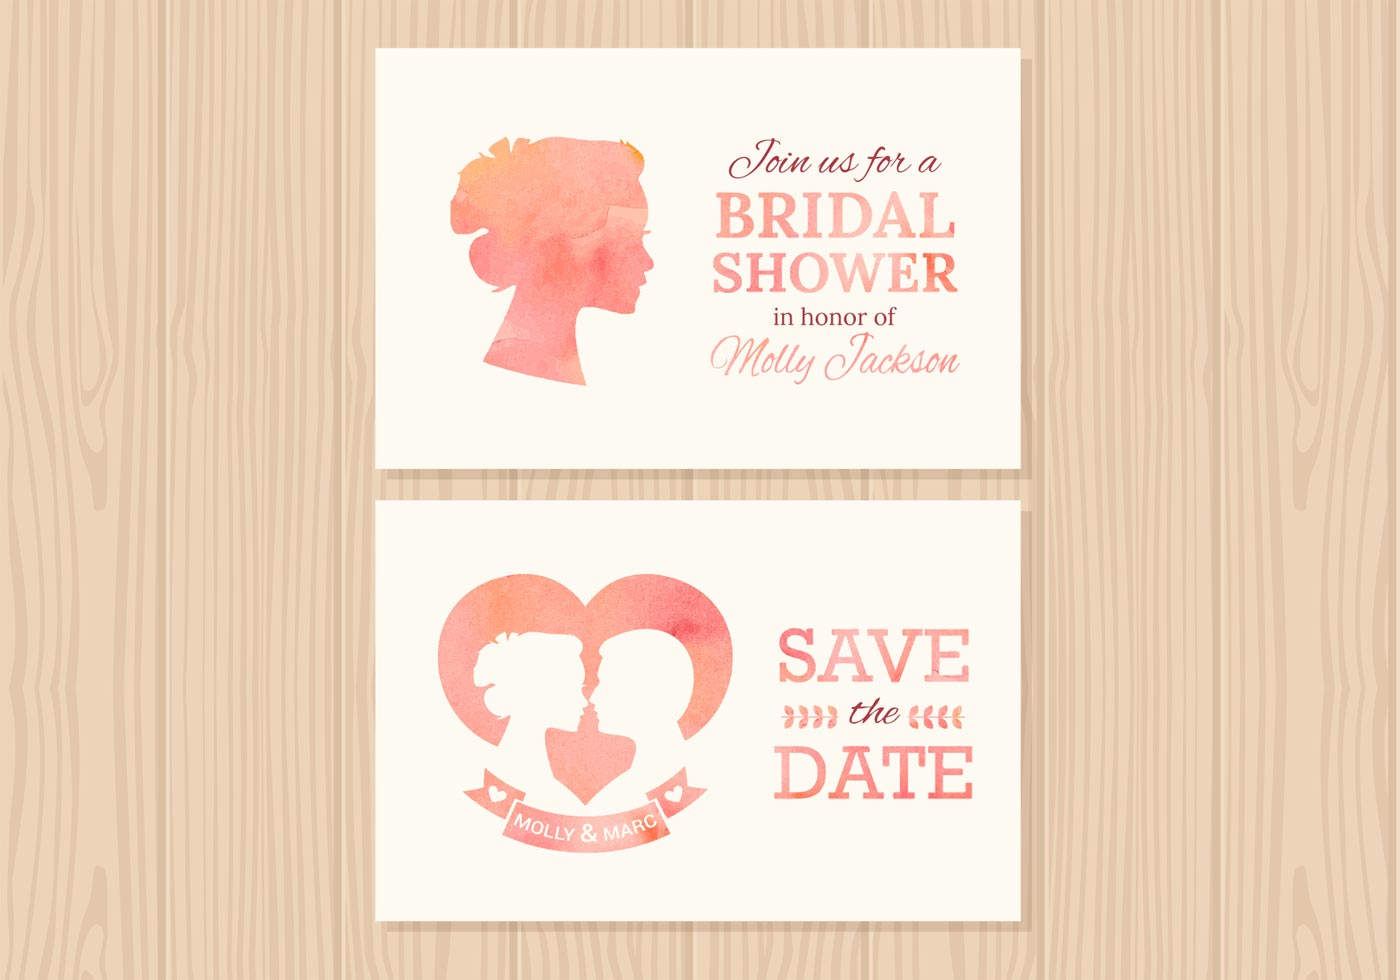 Wedding Invitation Vector Cards - Download Free Vector Art, Stock ...